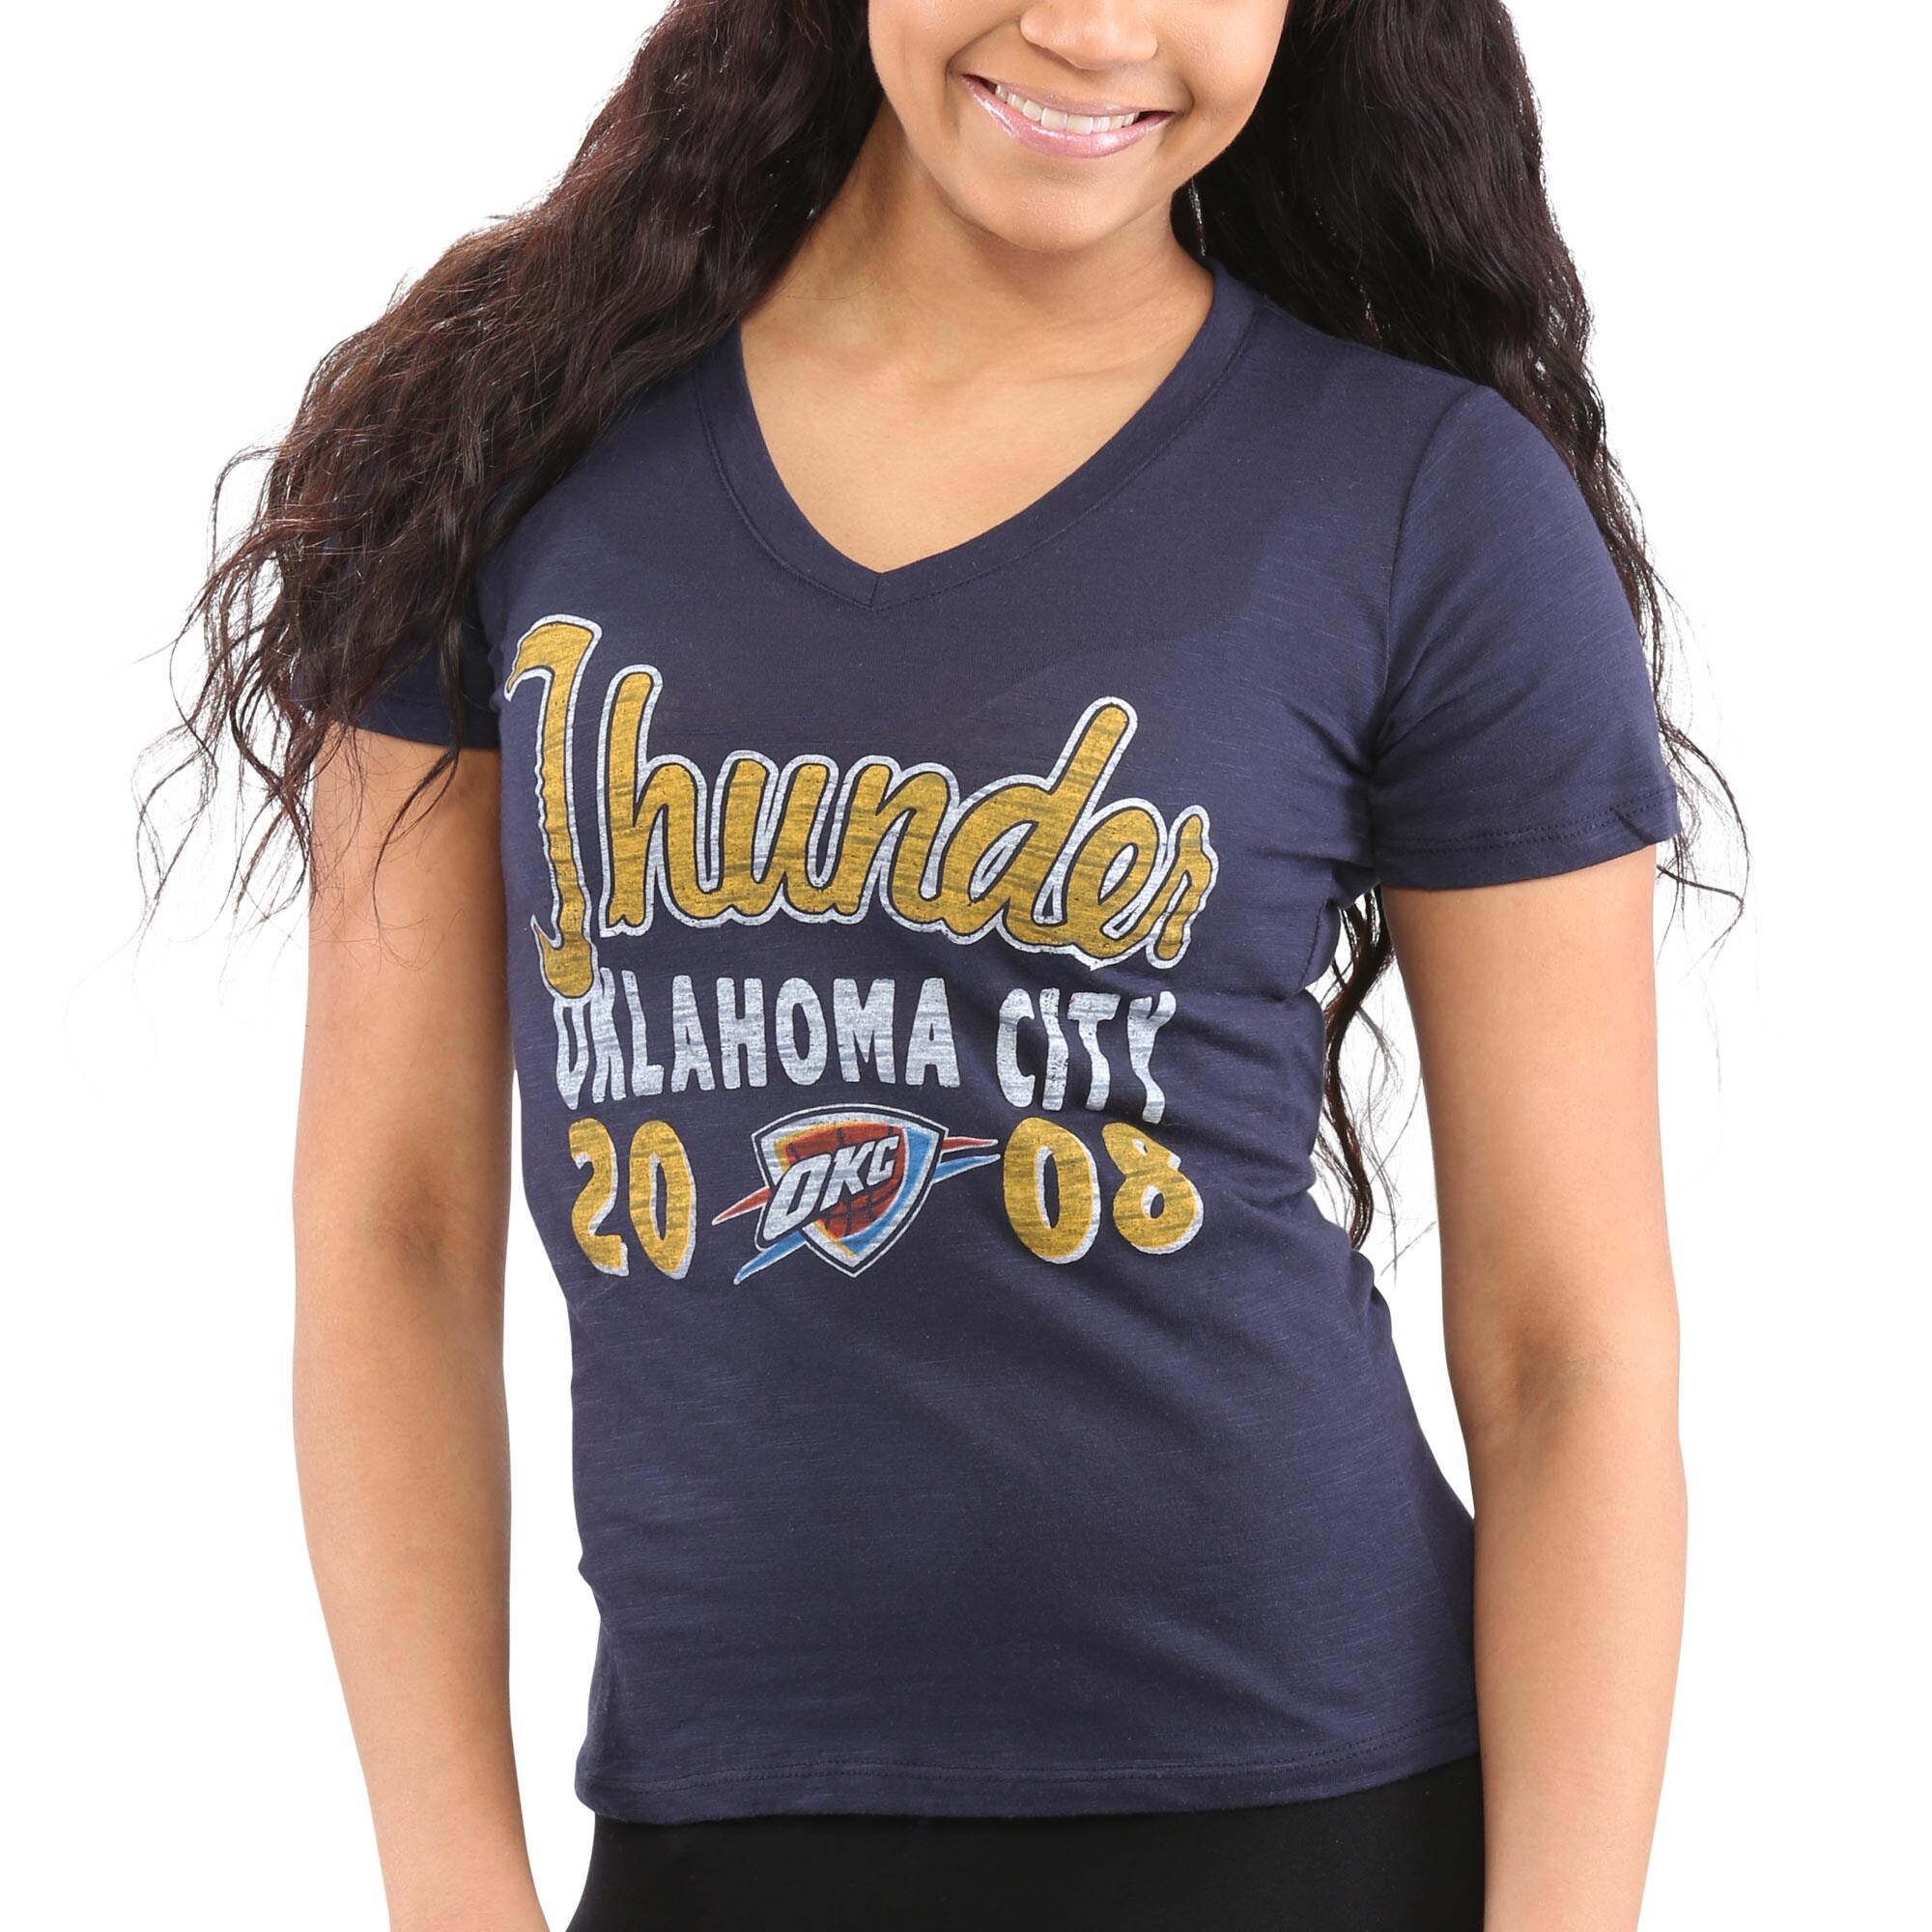 Oklahoma City Thunder Women's Lifestyle Burnout Slim-Fit V-Neck T-Shirt - Navy Blue